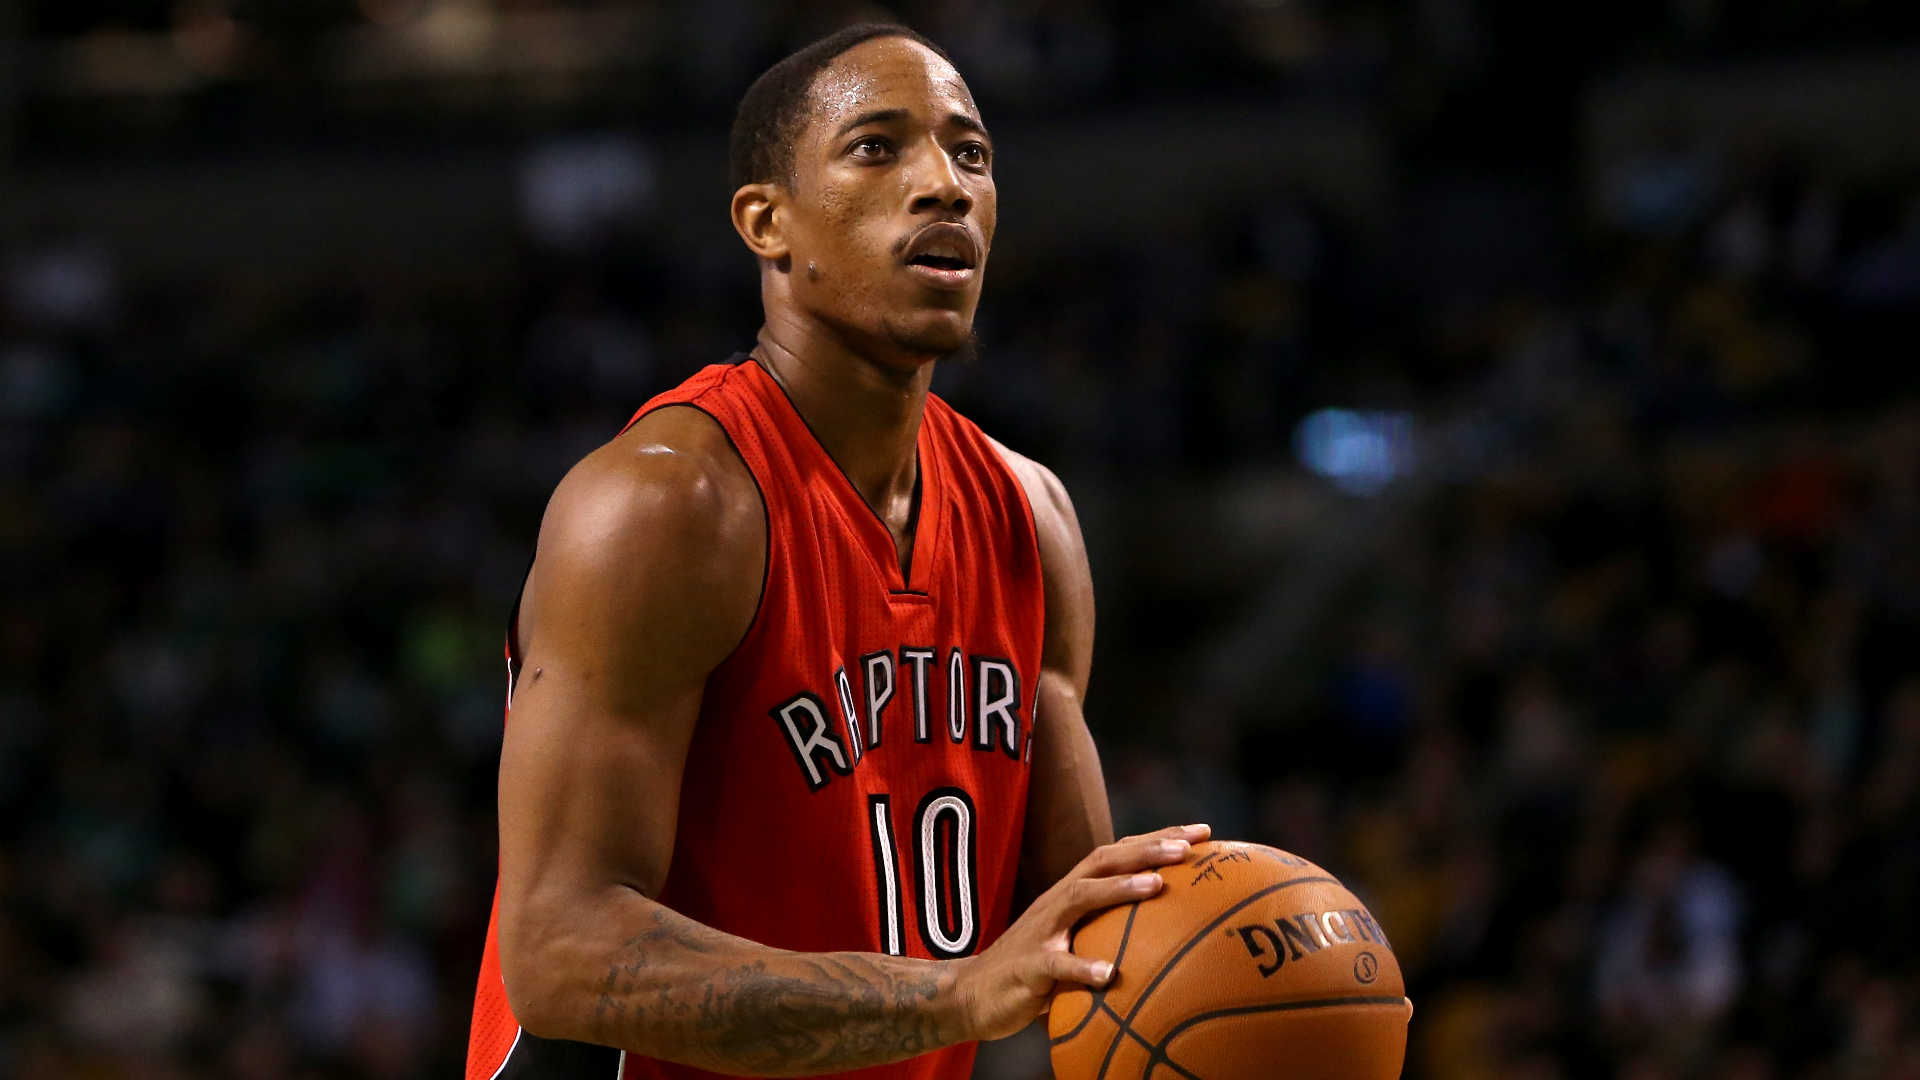 demar derozan hd wallpaper 63861